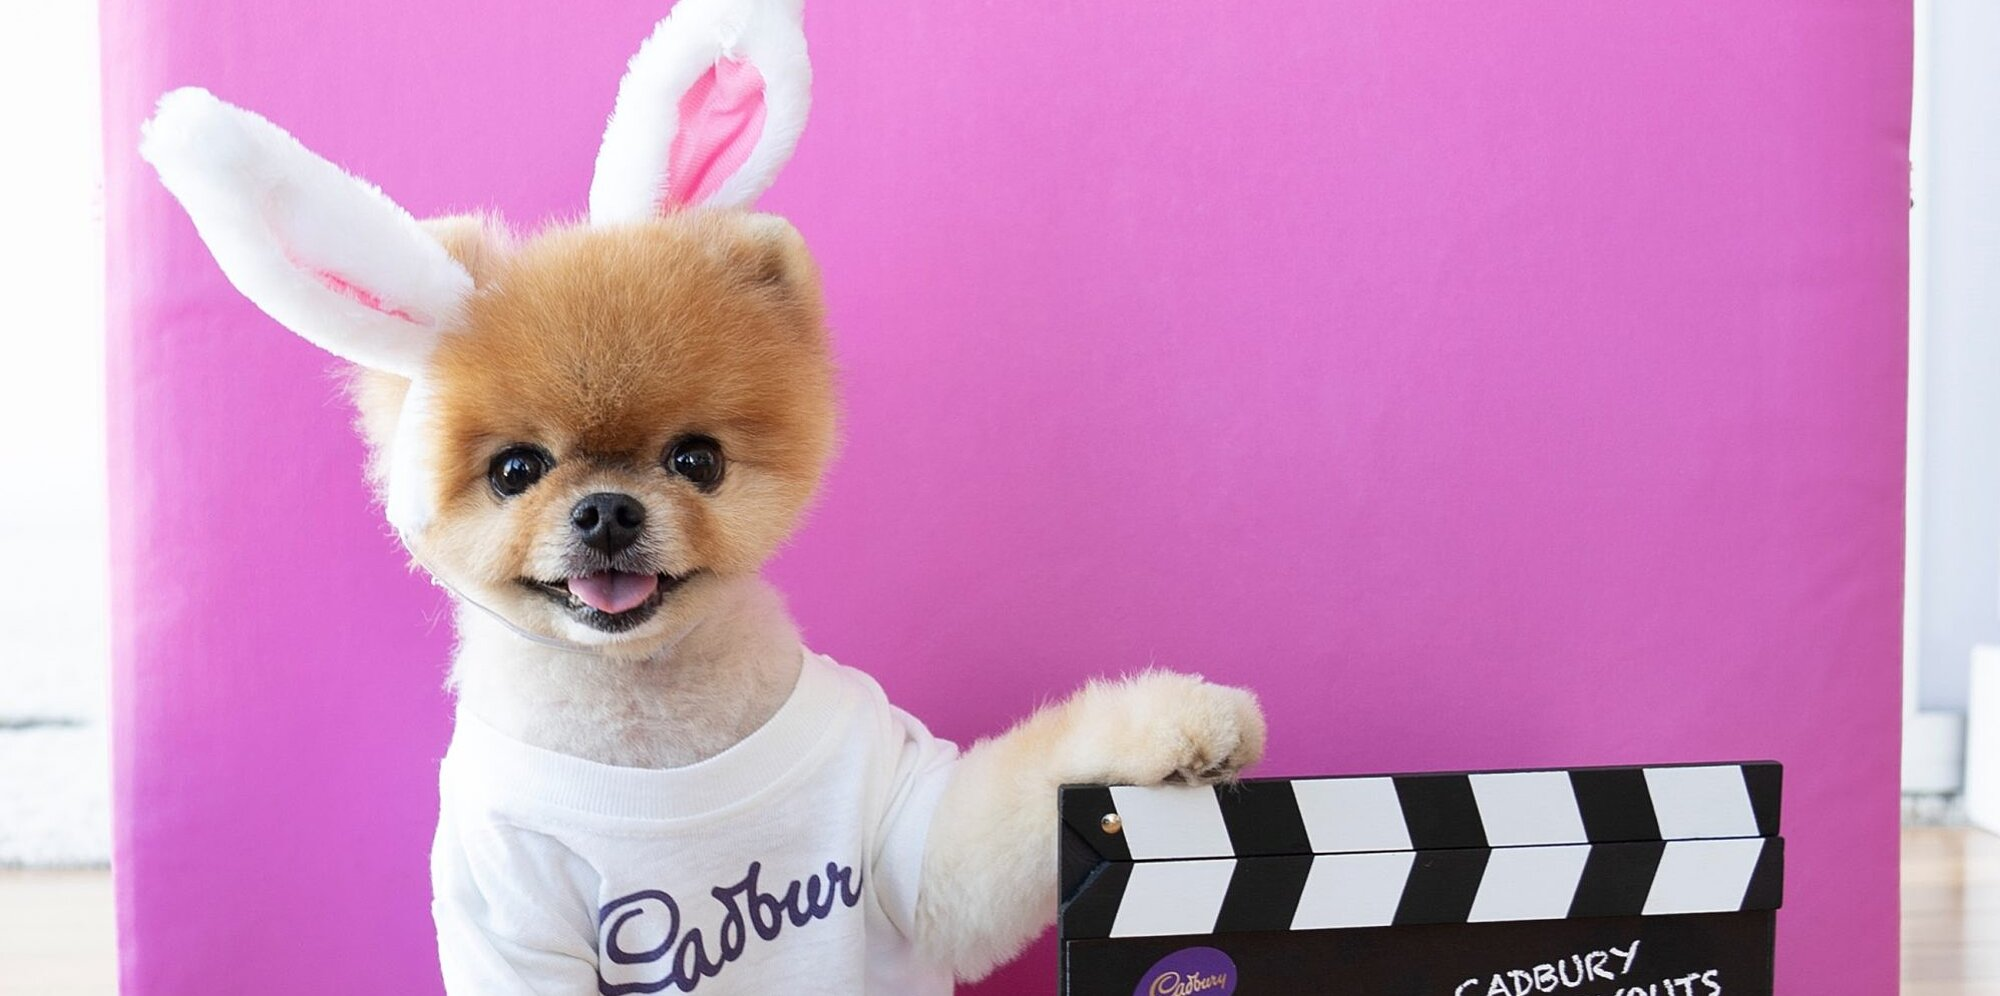 how to enter cadburys contest for an easter mascot